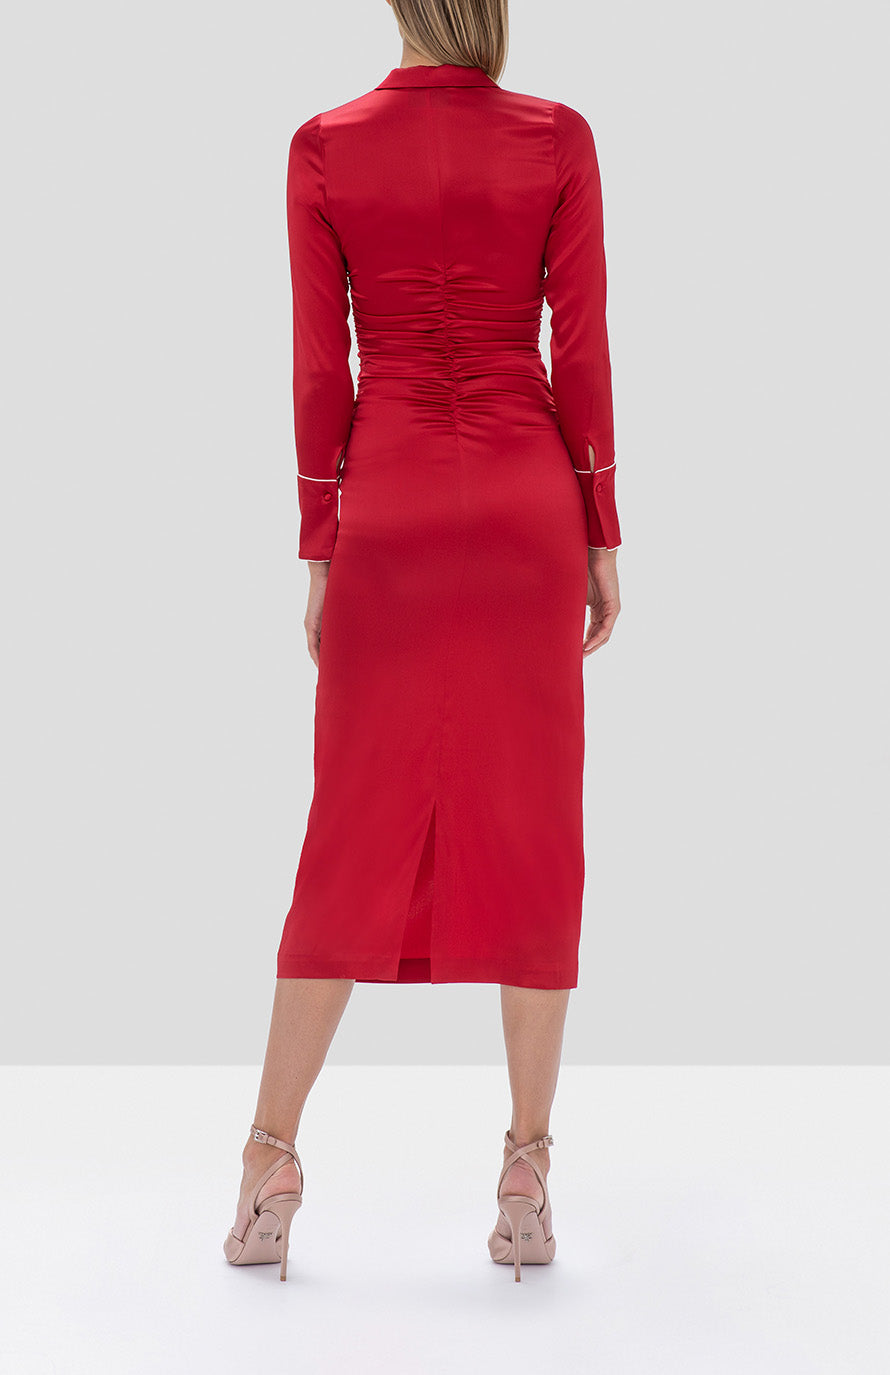 Alexis Candace Dress in Red - Rear View